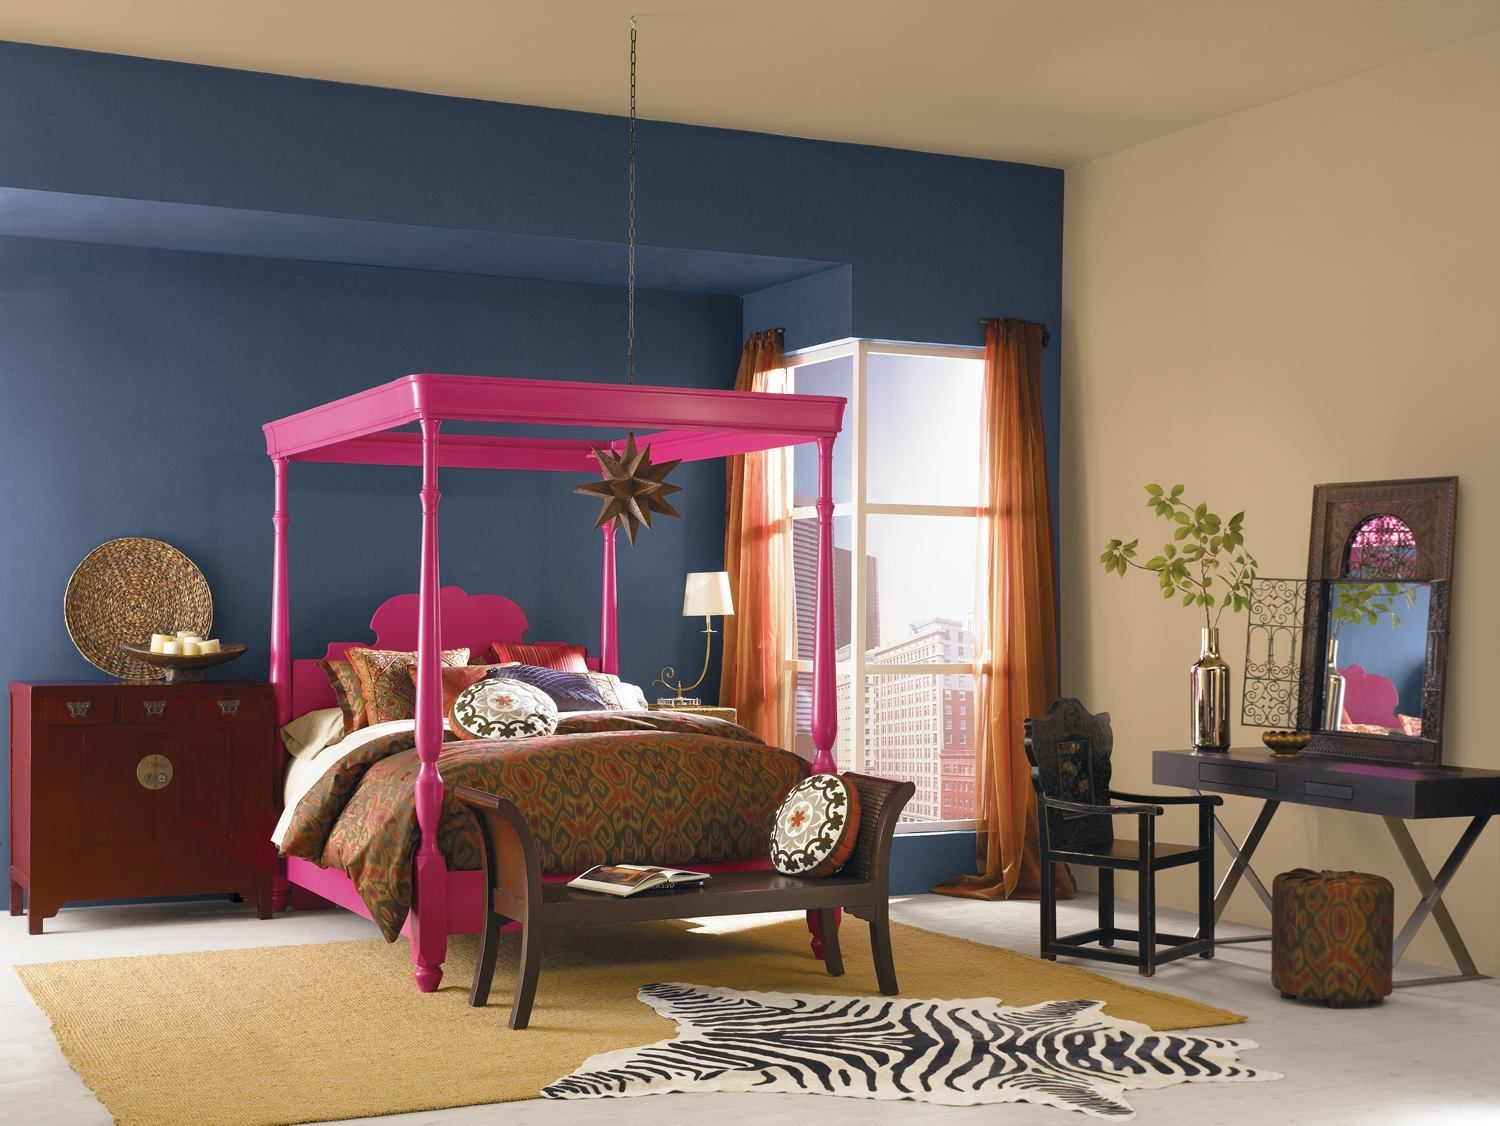 This pink queen bed frame add glamour to the bedroom. The